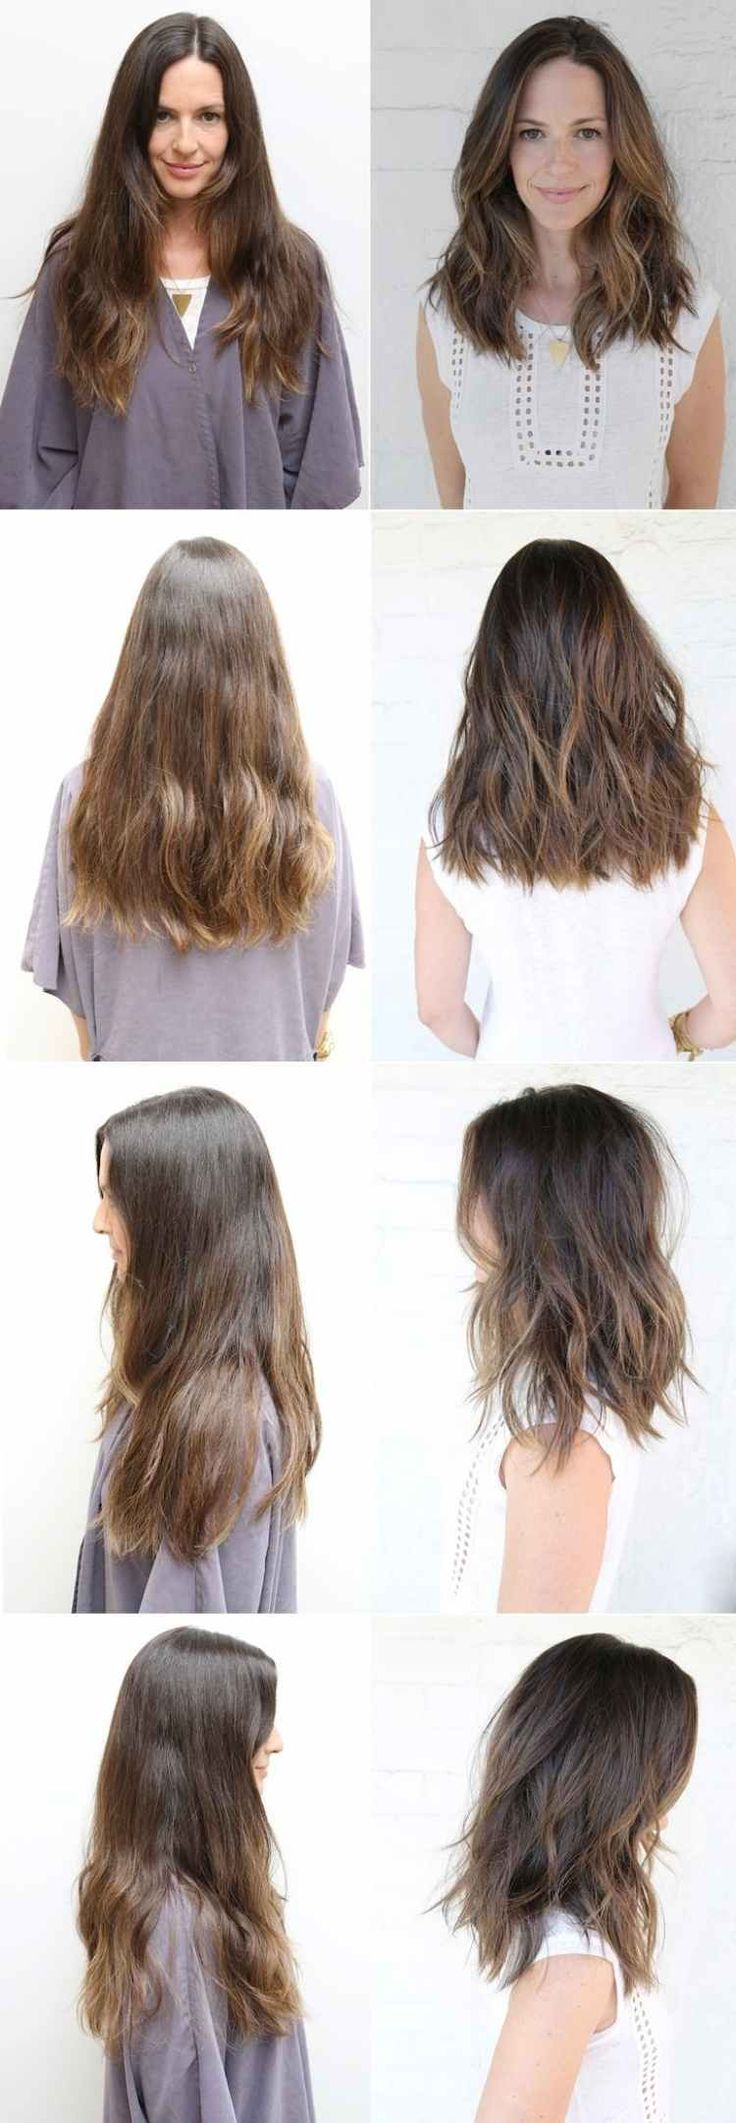 heavily staggered long hair - smooth A line